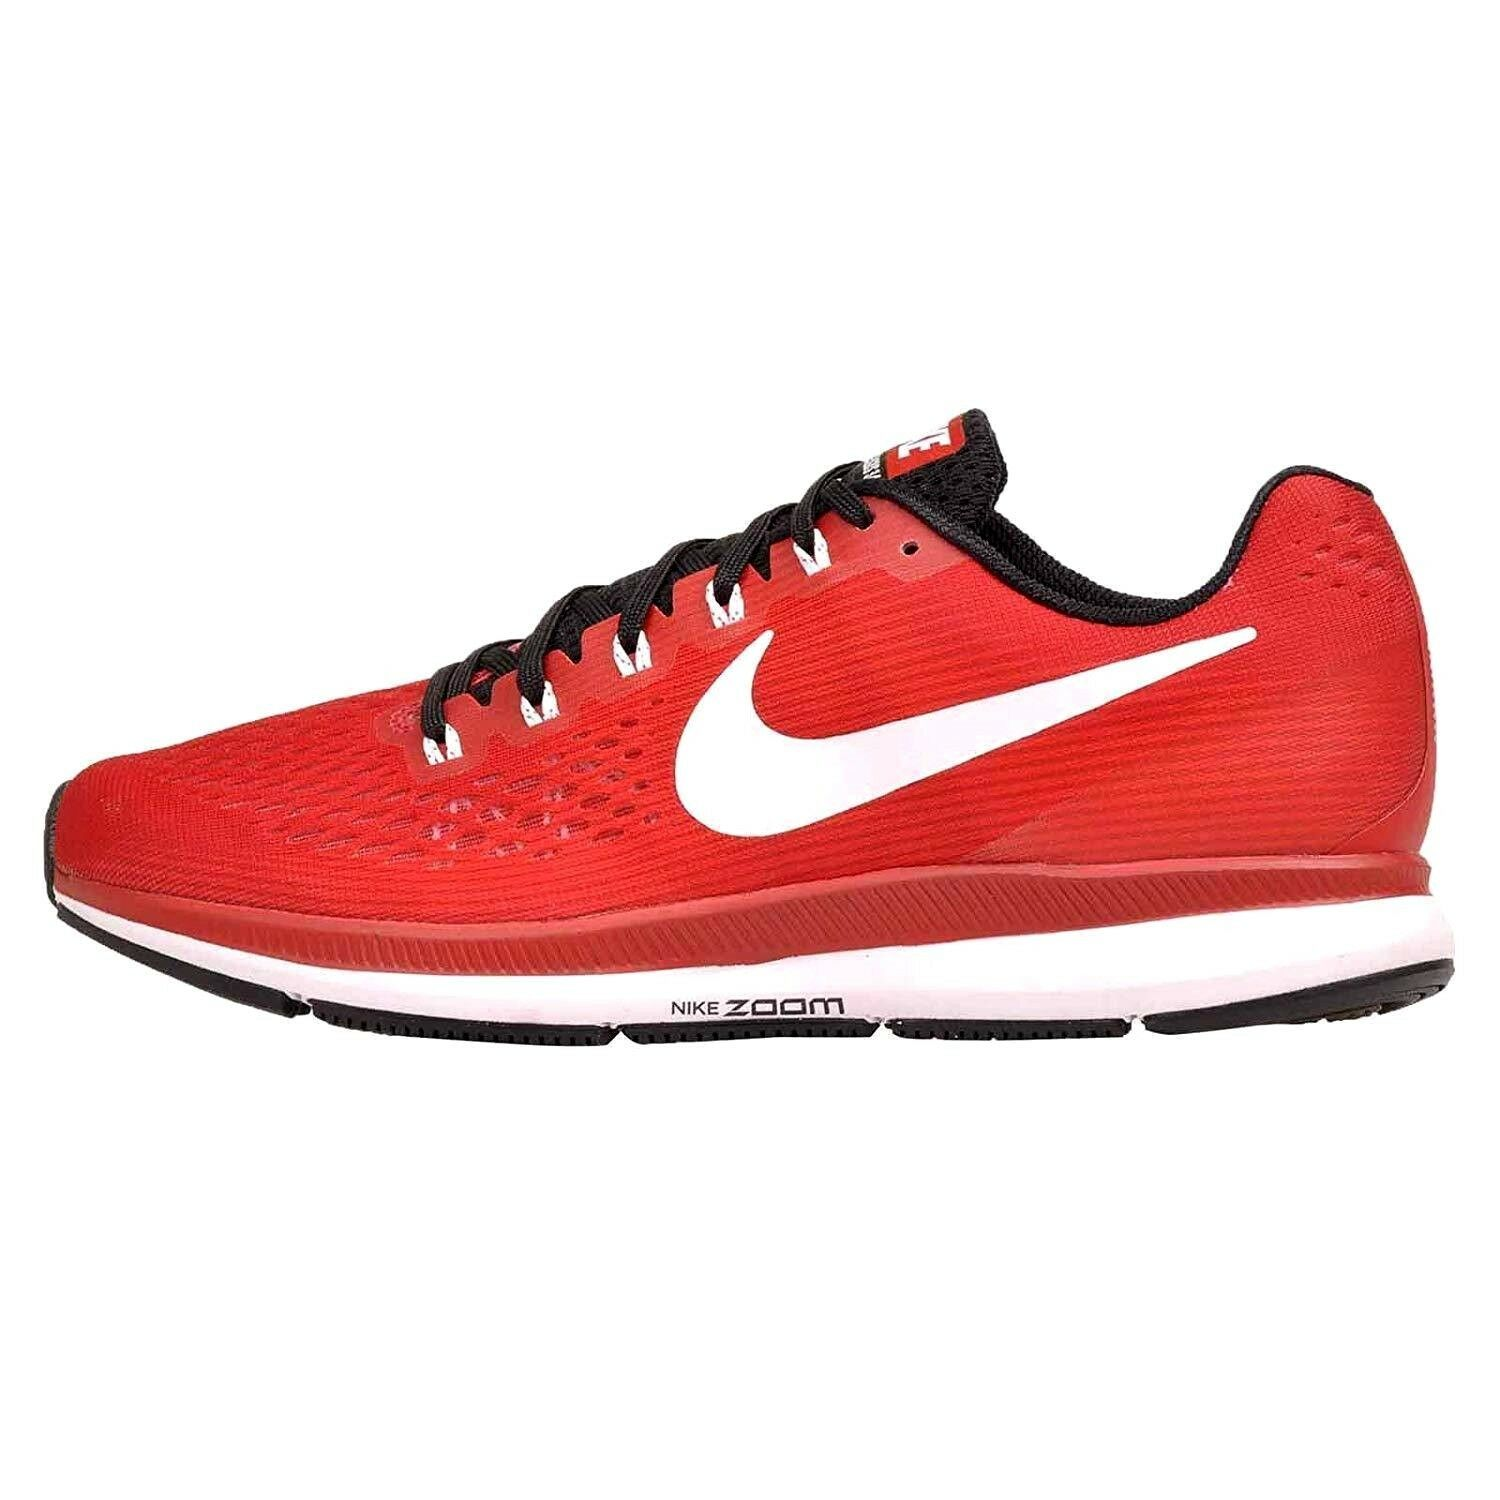 0a952af6176 Nike Air Zoom Pegasus 34 TB Mens Running Shoes Shoes Shoes 14 Red Black  887009 601